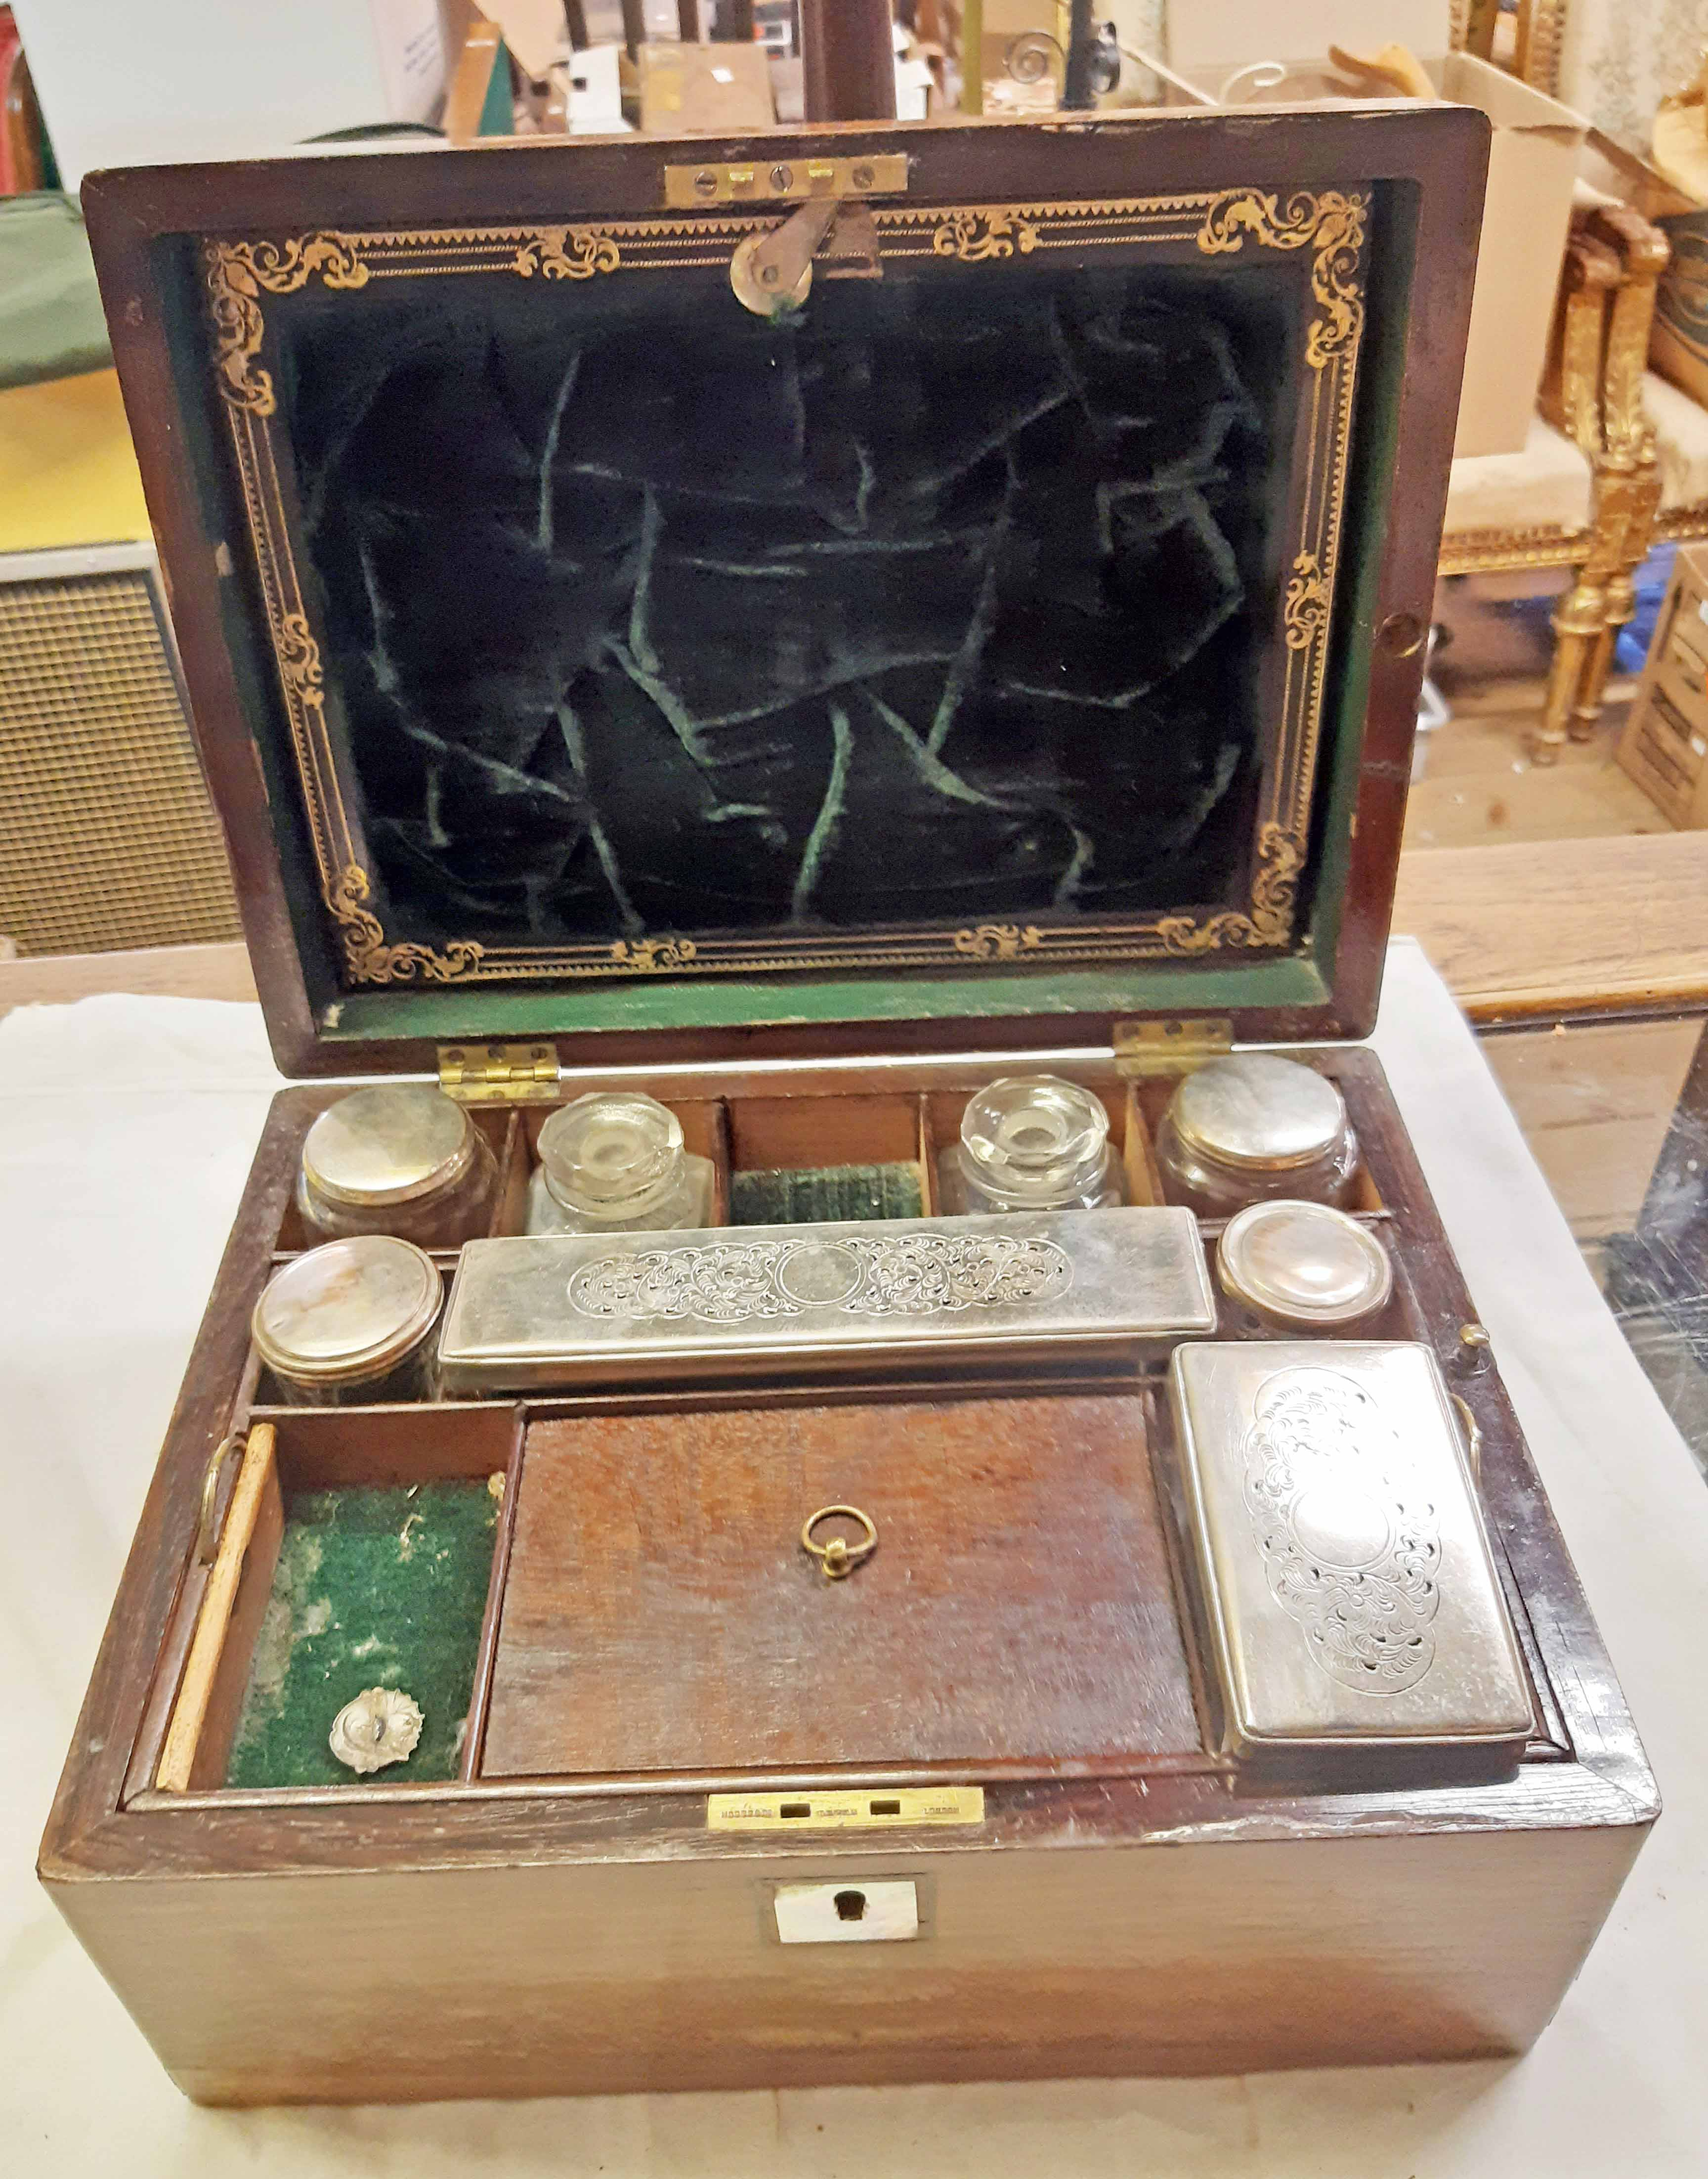 A Victorian rosewood veneered travelling vanity box, the interior fitted with glass jars and boxes - Image 2 of 5